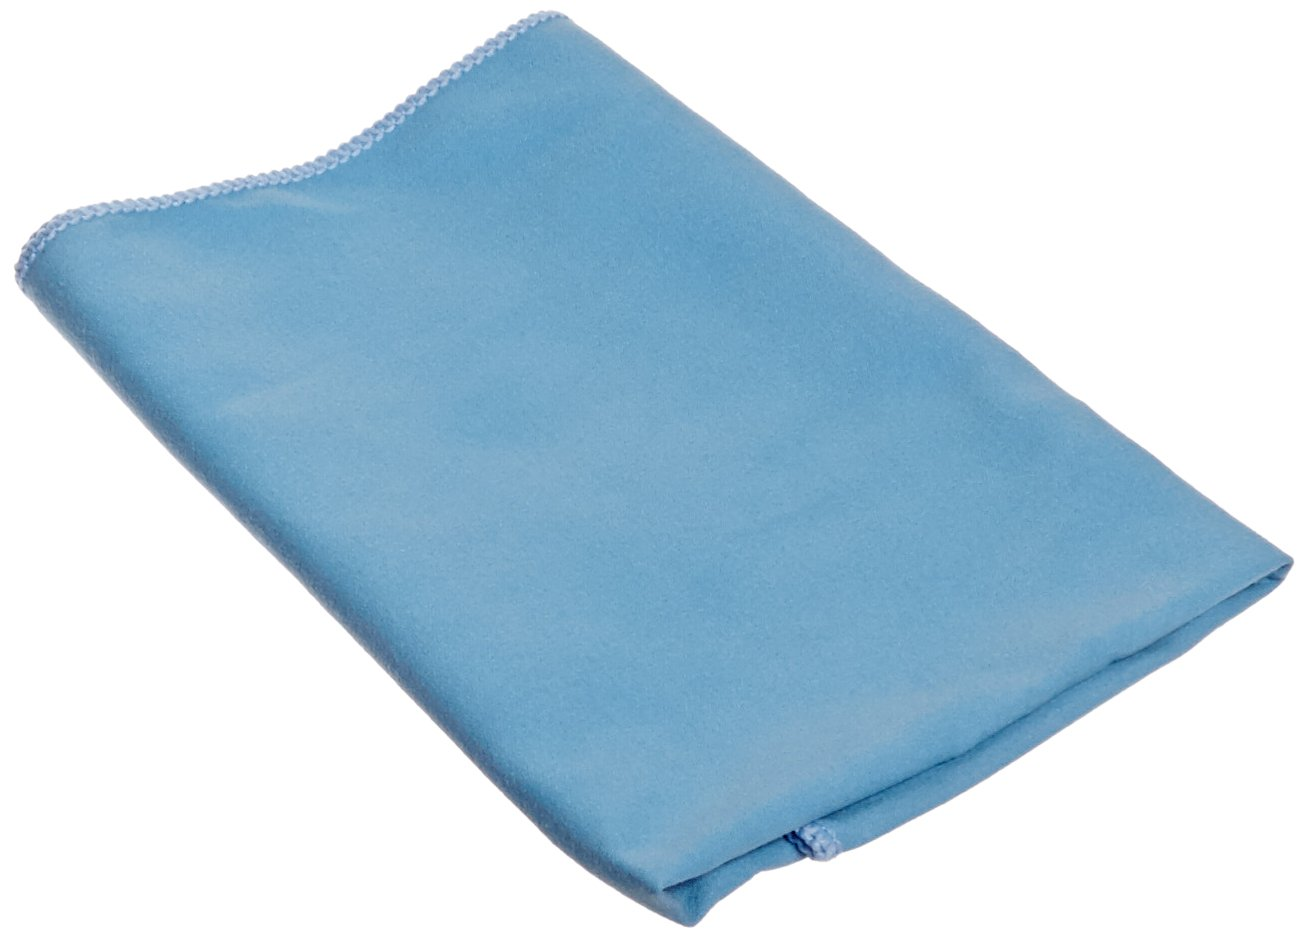 Impact LFK100 Microfiber Suede Glass Cloth, 16'' Length x 16'' Width, Blue (18 Bags of 12)